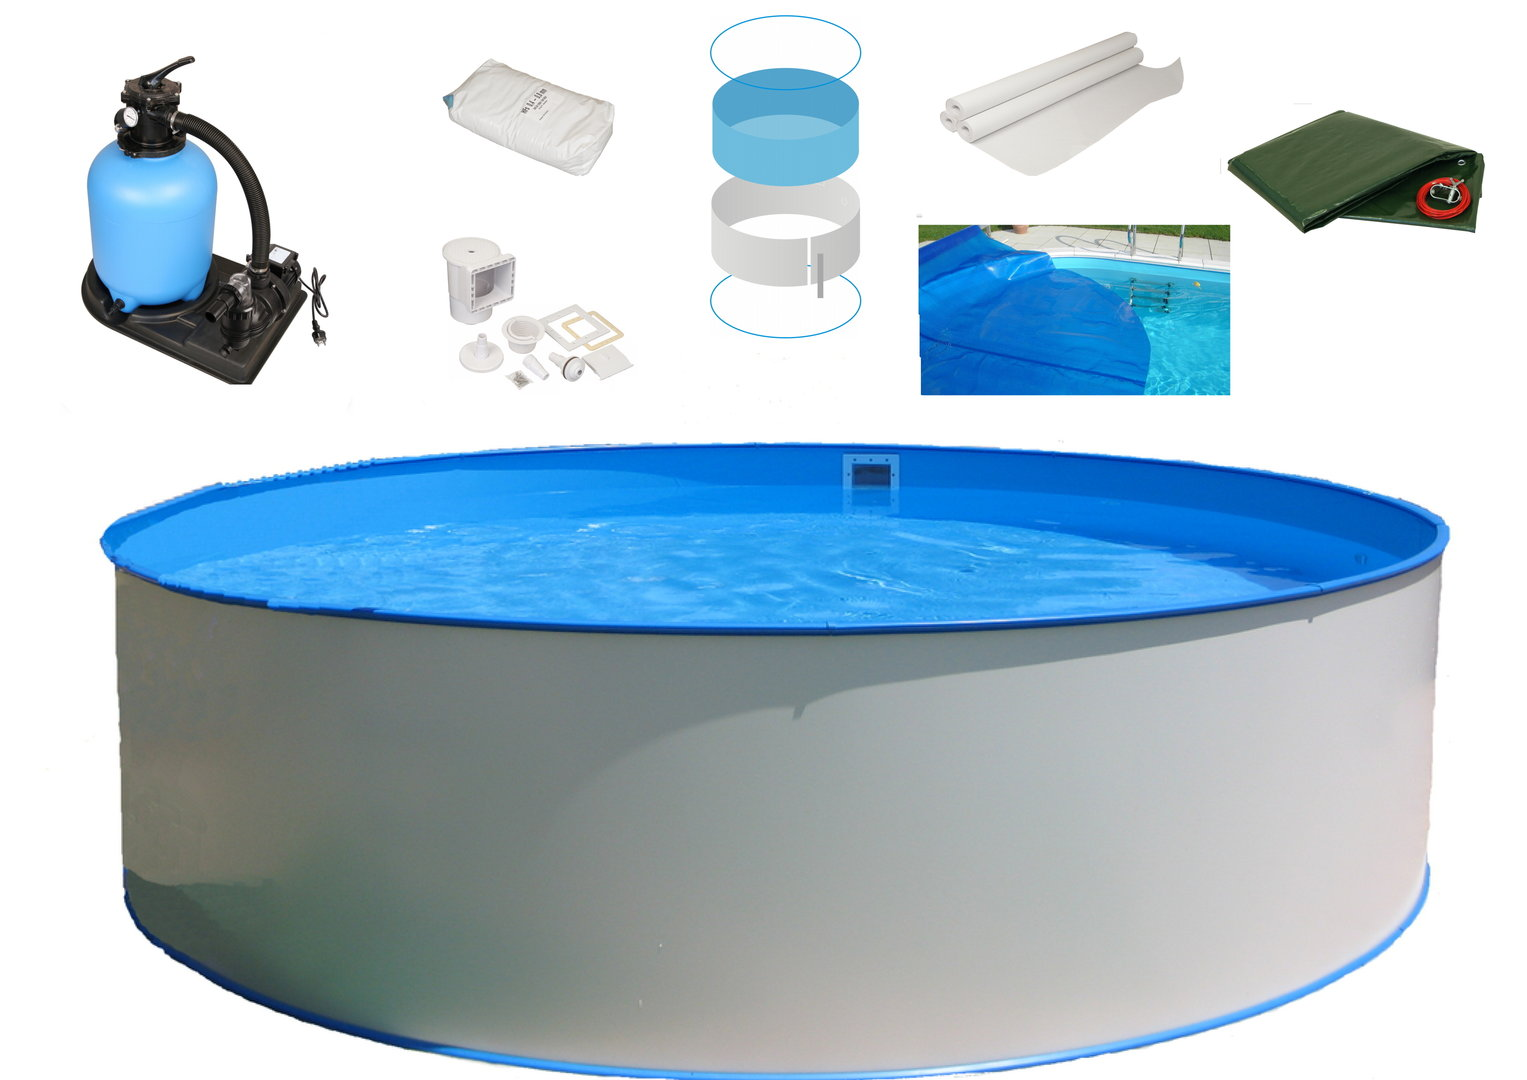 Pool Polyesterbecken Rund Stahlwandpool Komplettset All In One H120 Ø350cm Basic